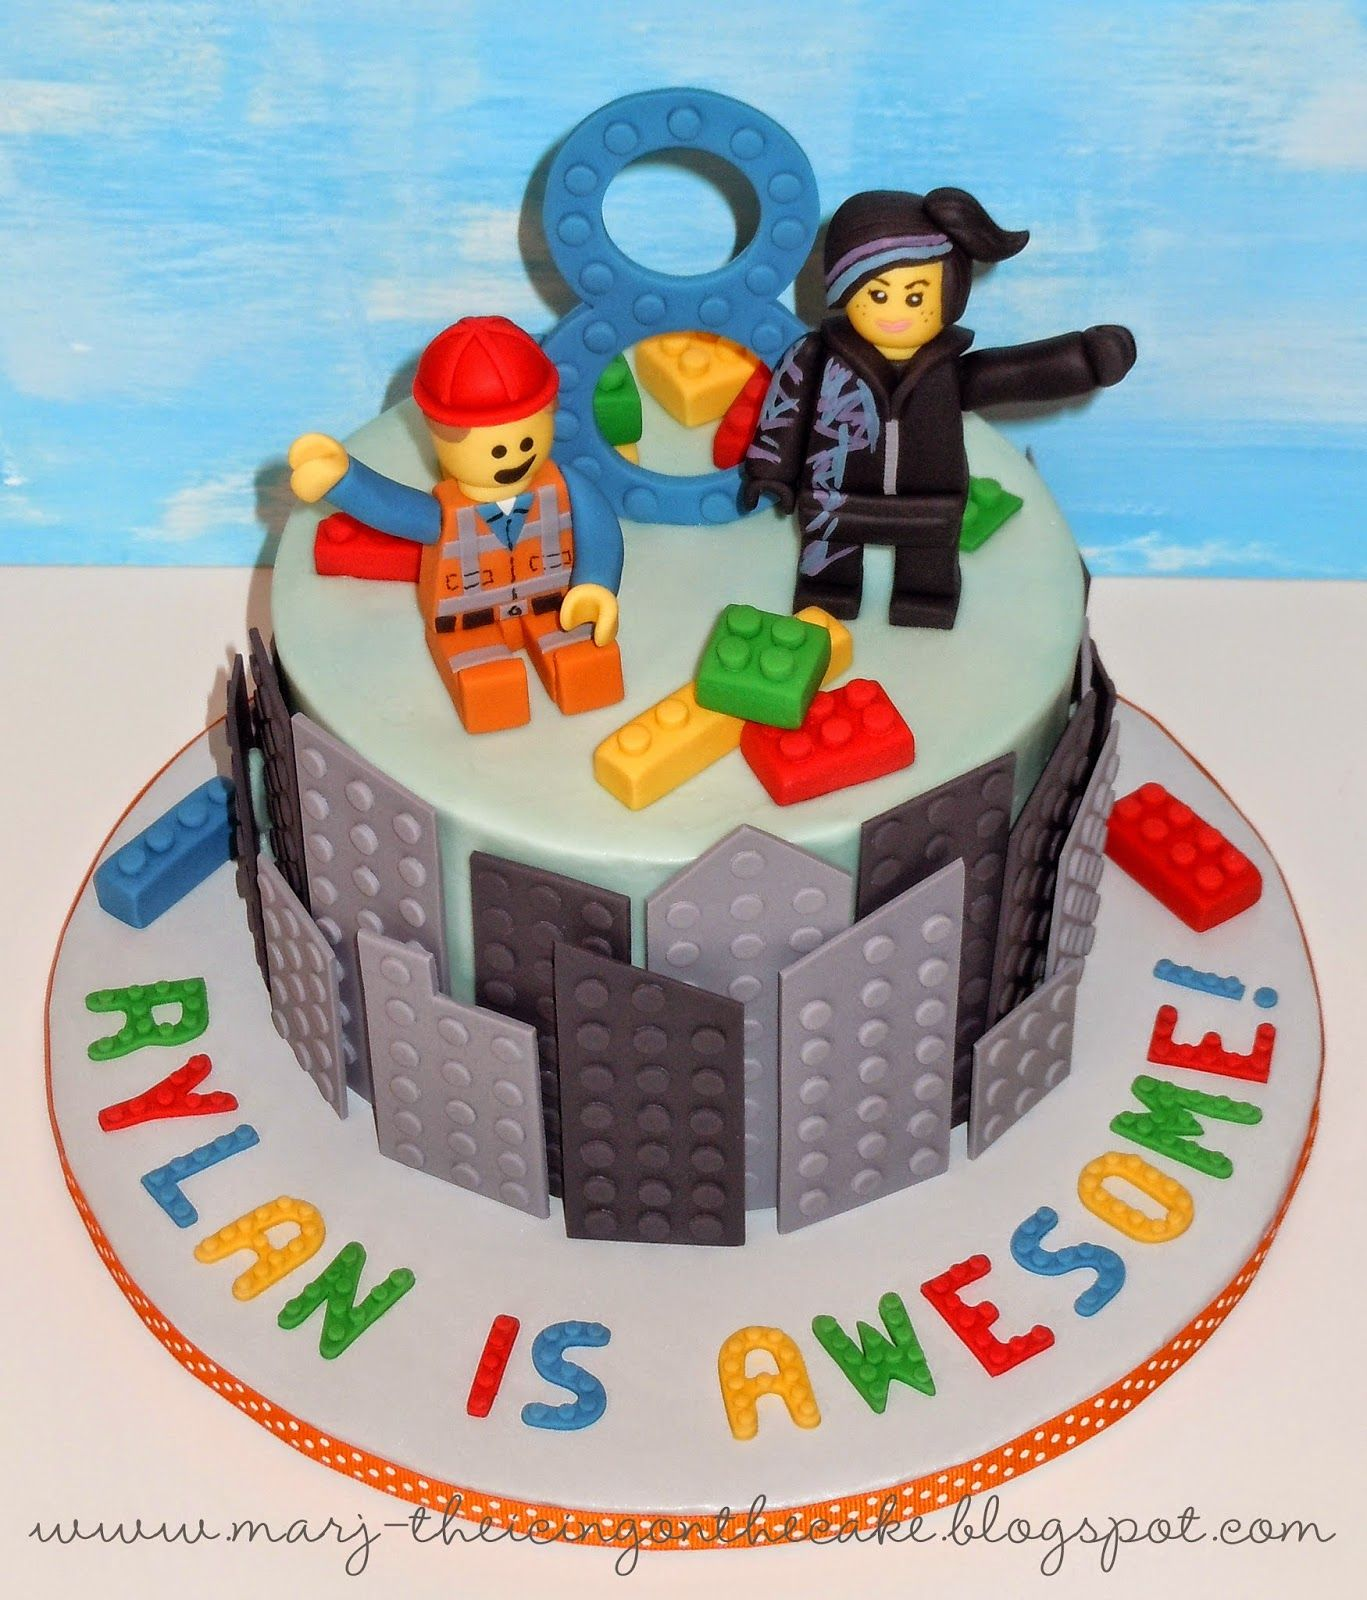 The Icing On Cake Lego Movie I Like Buildings Nice Off Set Gives Dimension